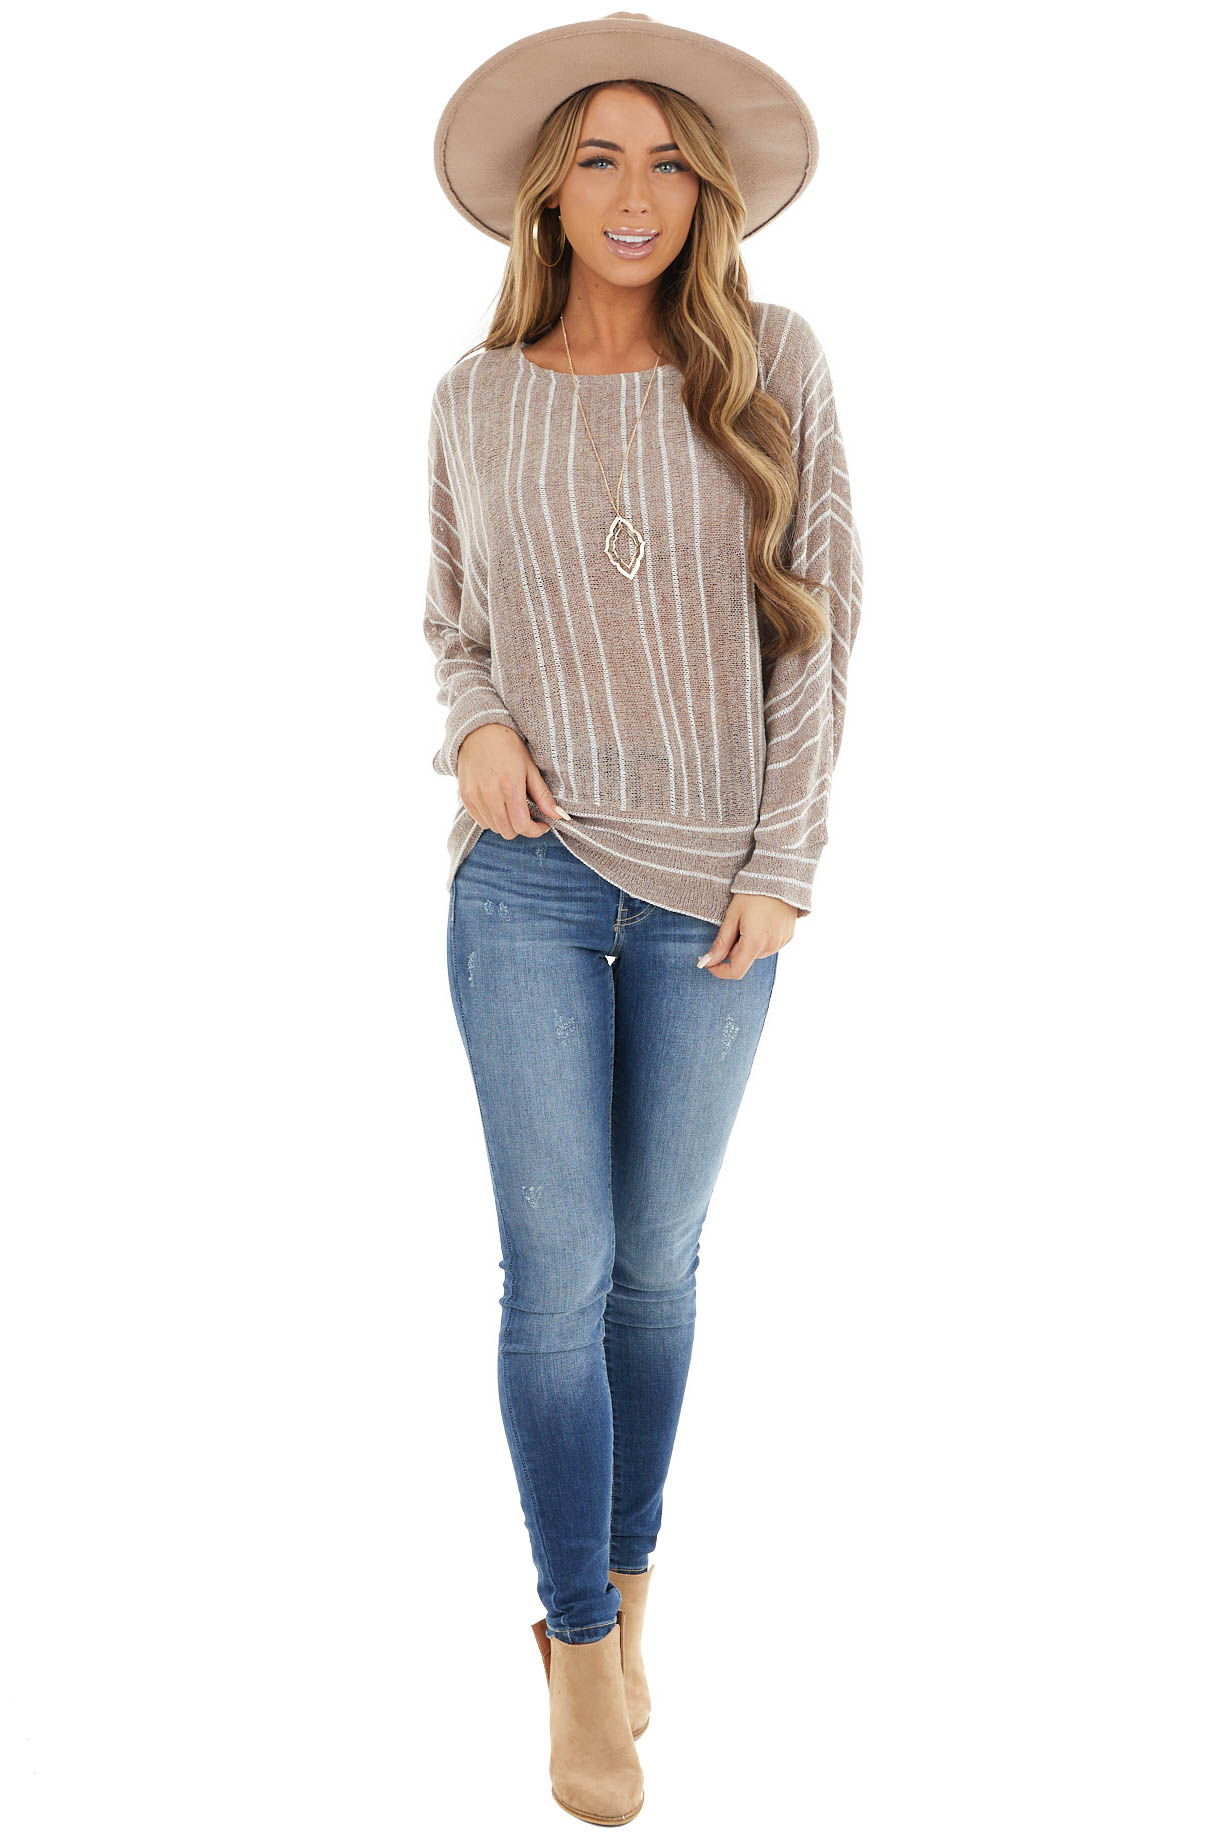 Beige Striped Loose Knit Sweater with Dolman Sleeves